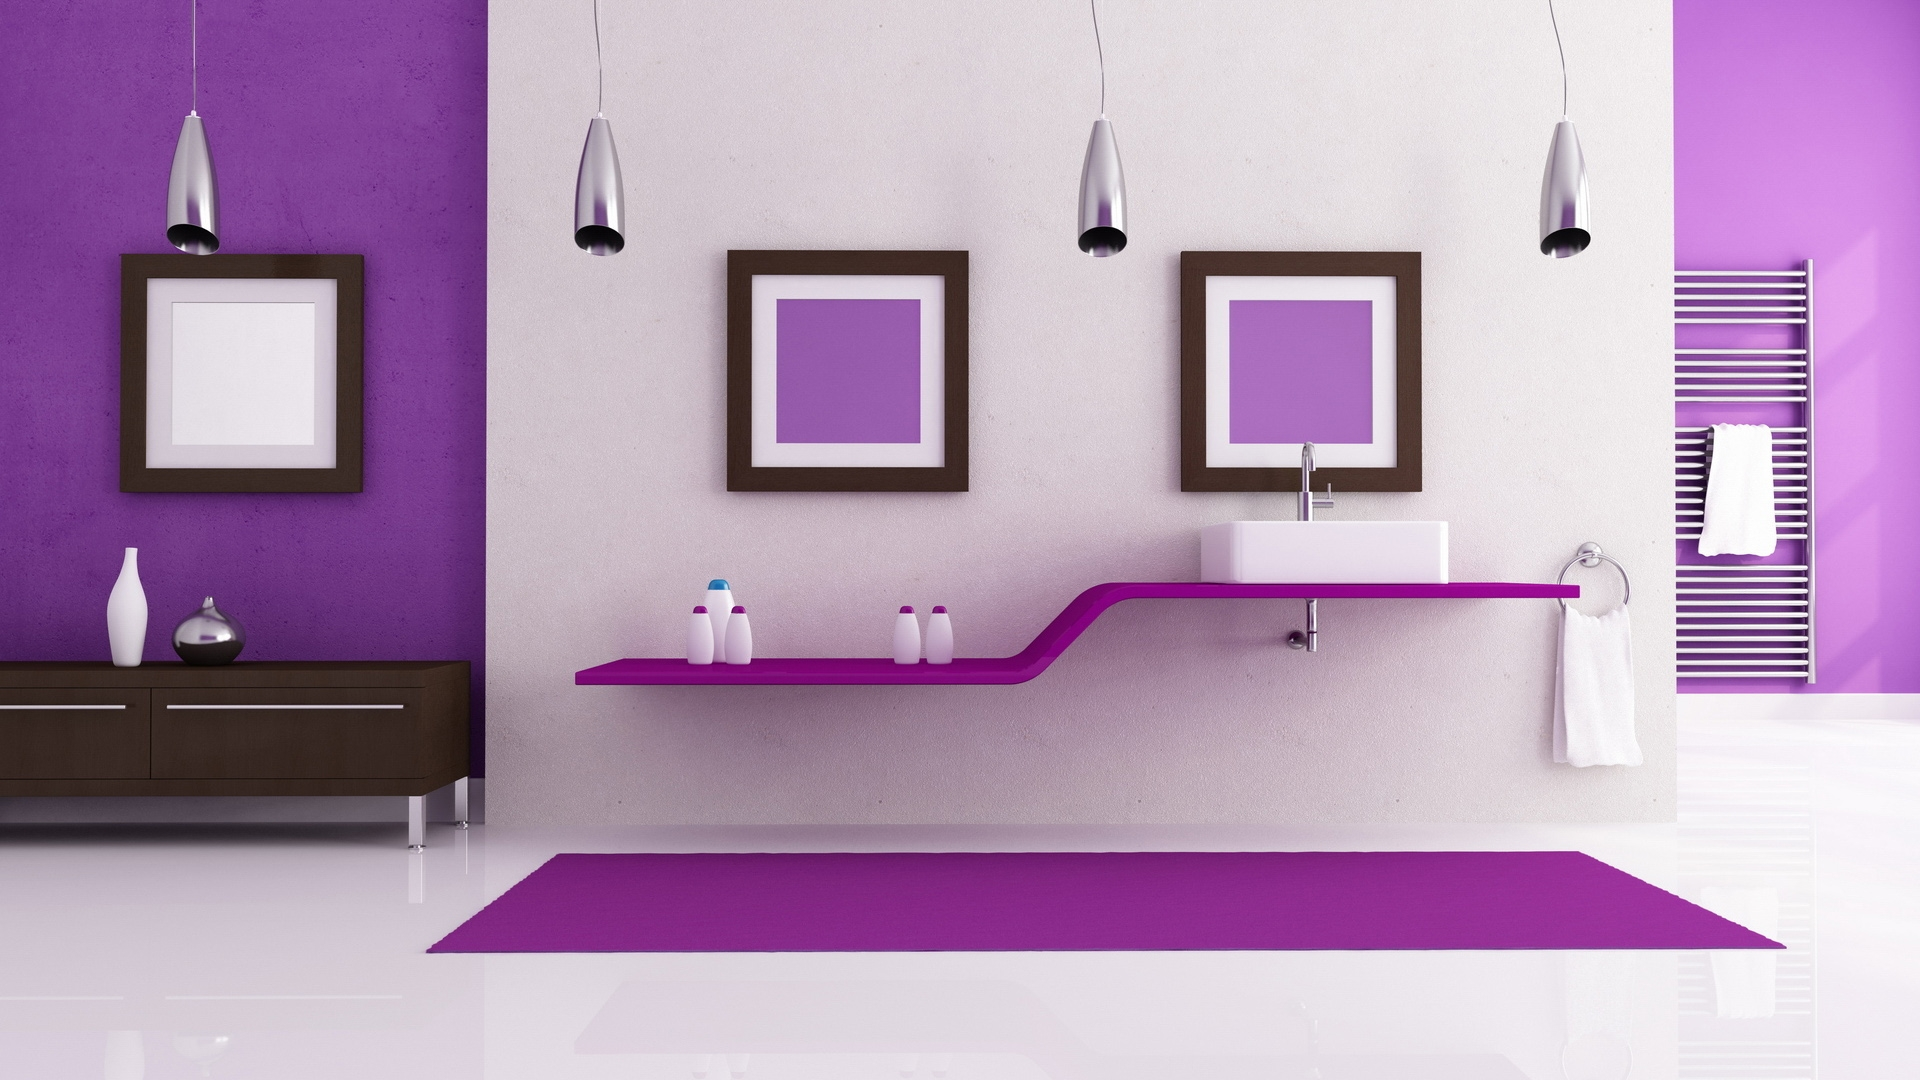 1920x1080 Purple Interior Desktop Pc And Mac Wallpaper